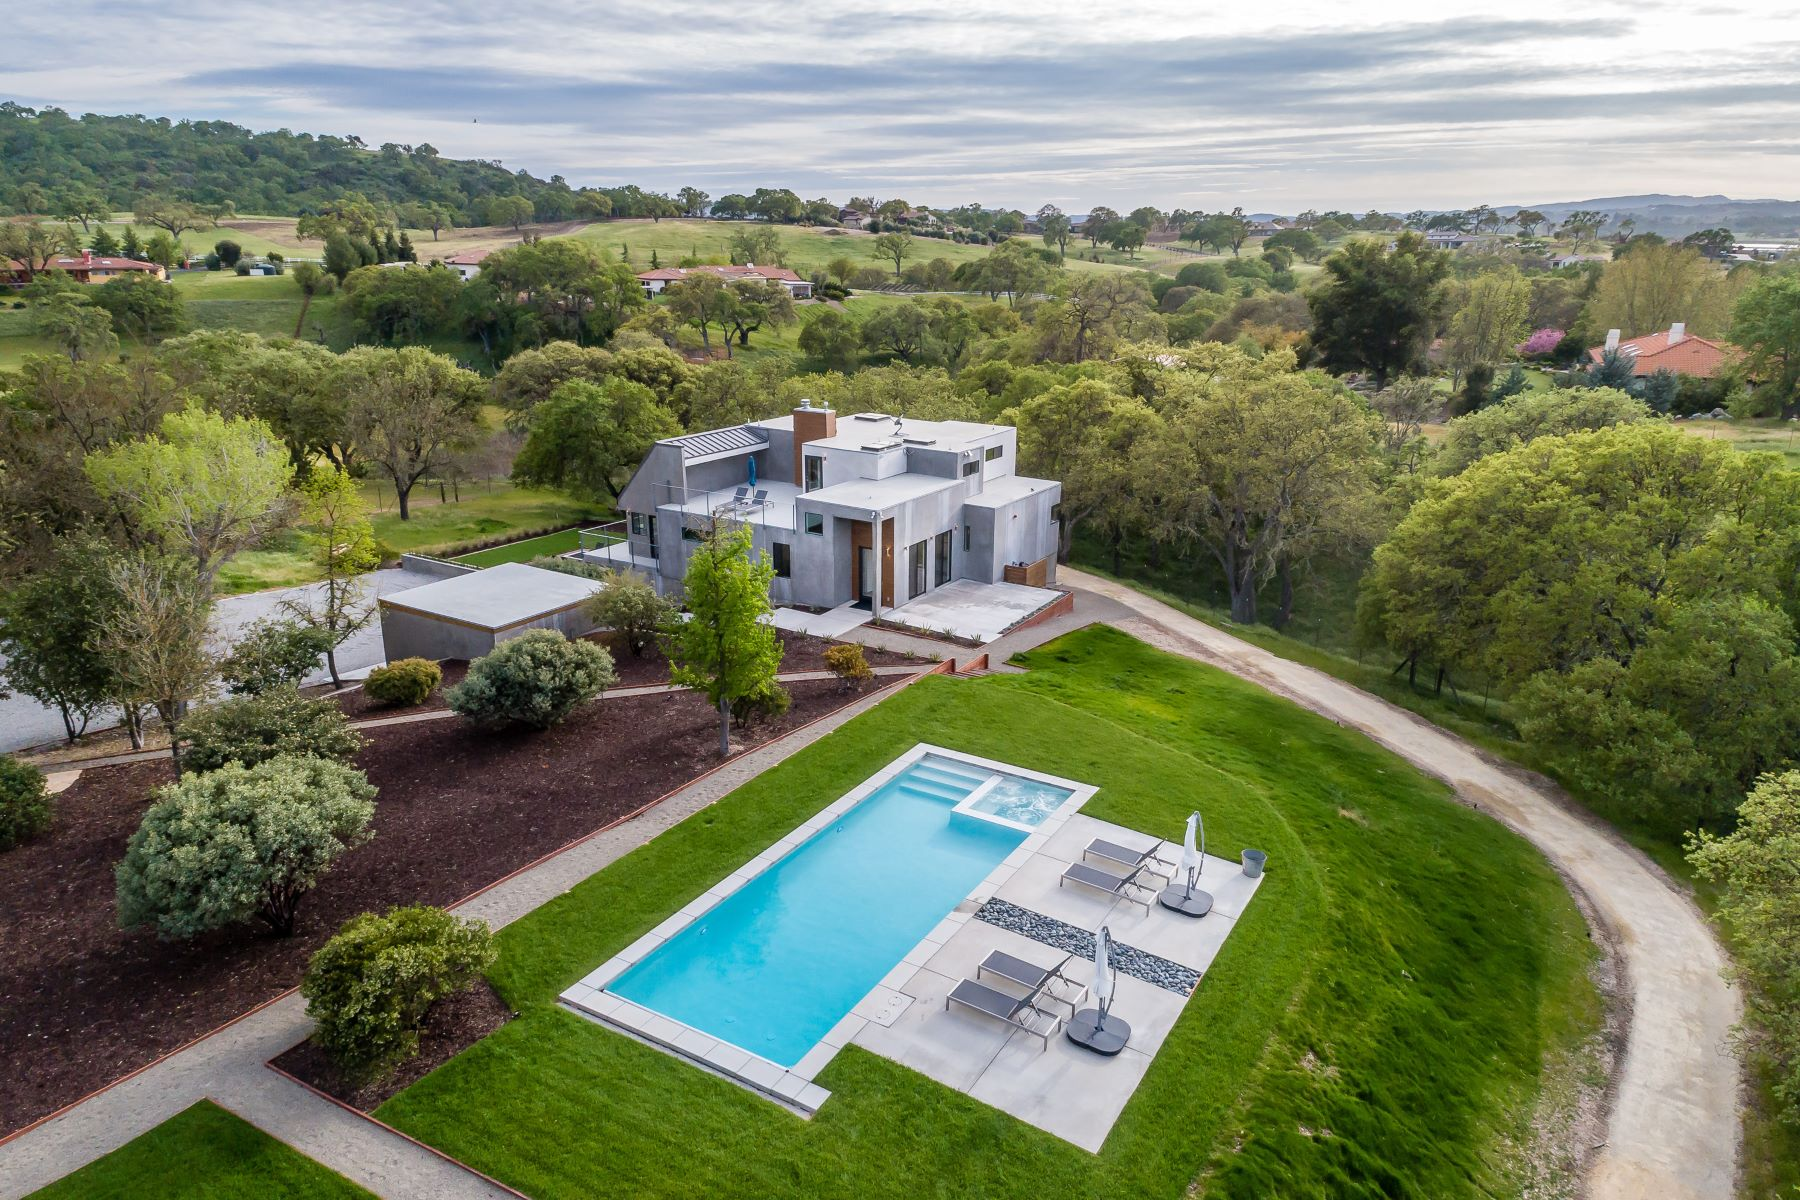 Single Family Homes for Active at Ultimate Gatherings & Extravagant Entertaining 1475 Barley Grain Road Paso Robles, California 93446 United States